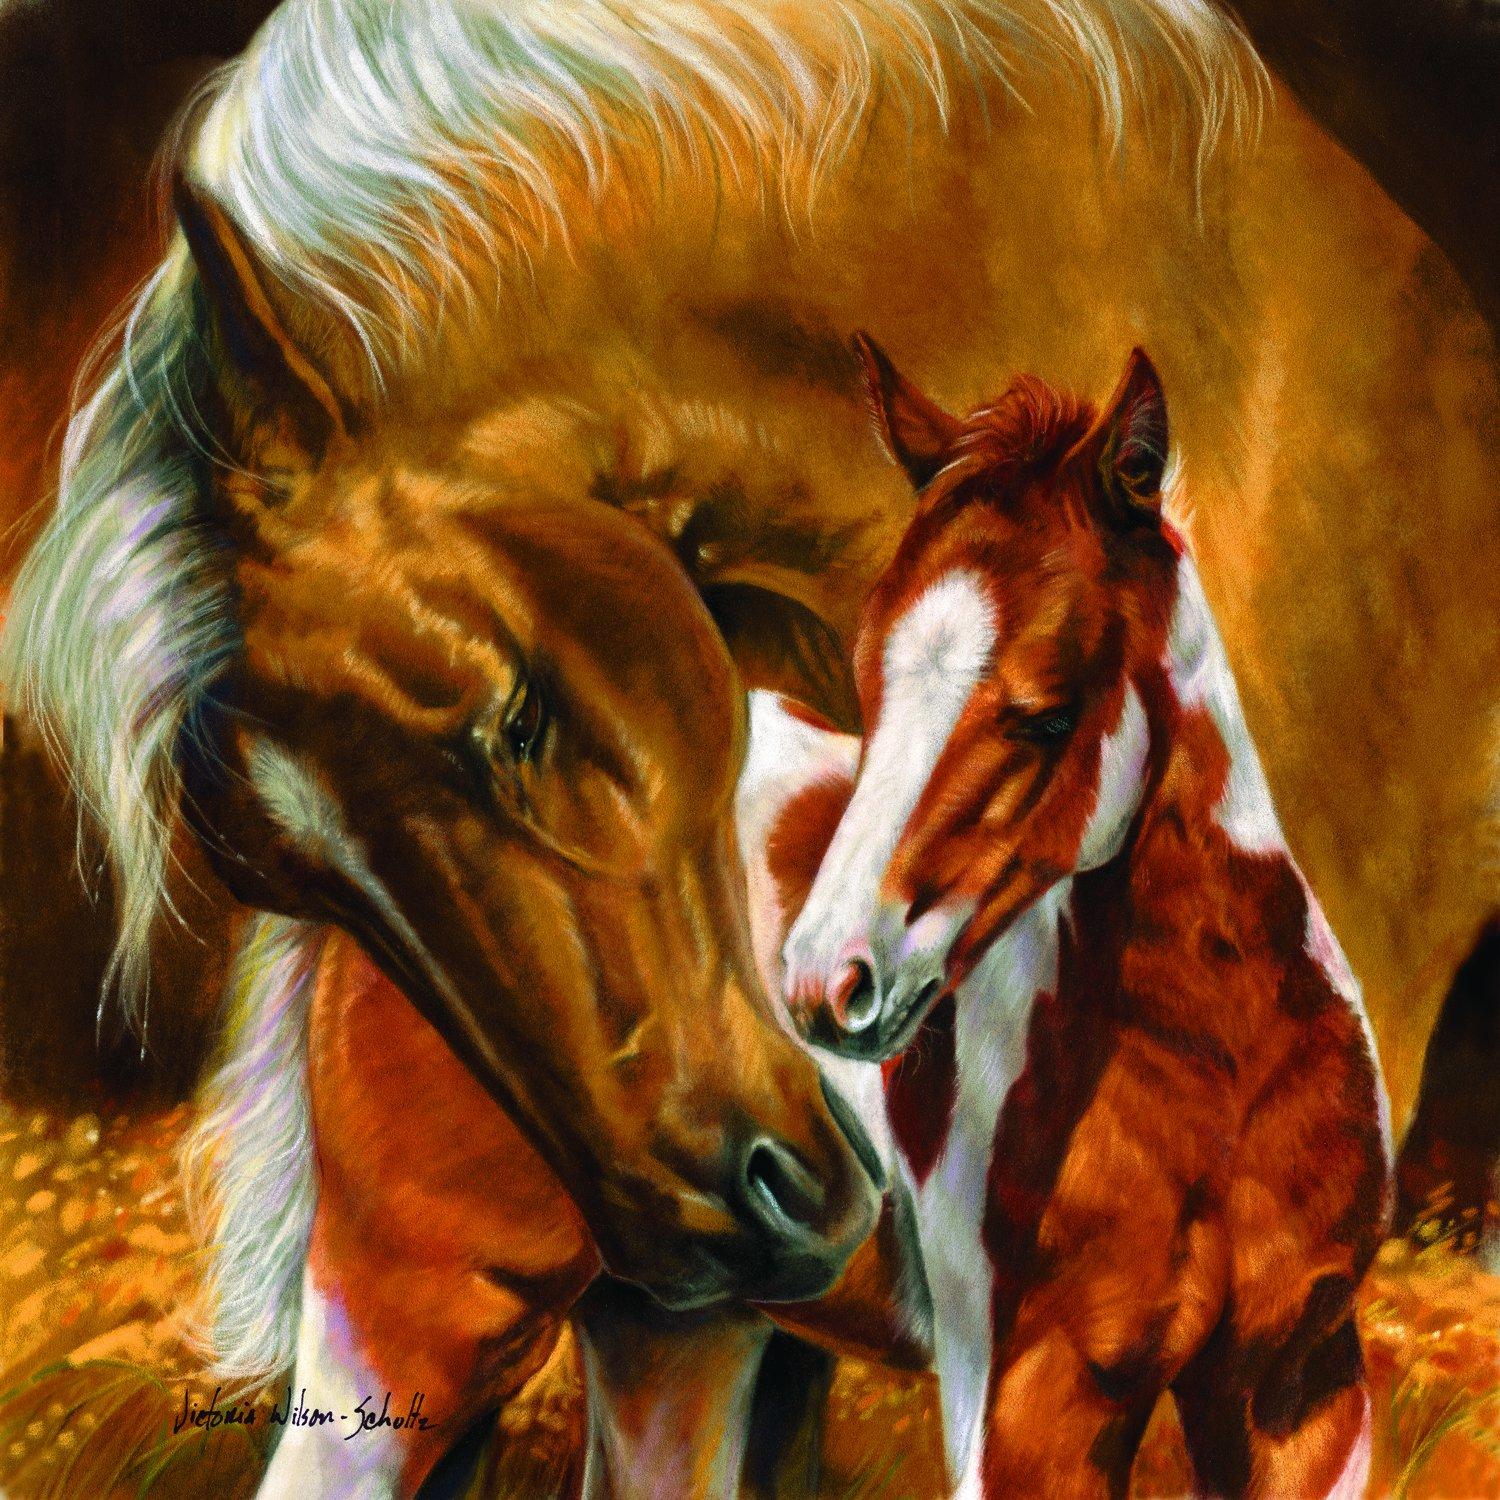 Uncategorized Horse Puzzle horse jigsaw puzzles that will absolutely capture your imagination a mothers touch puzzle